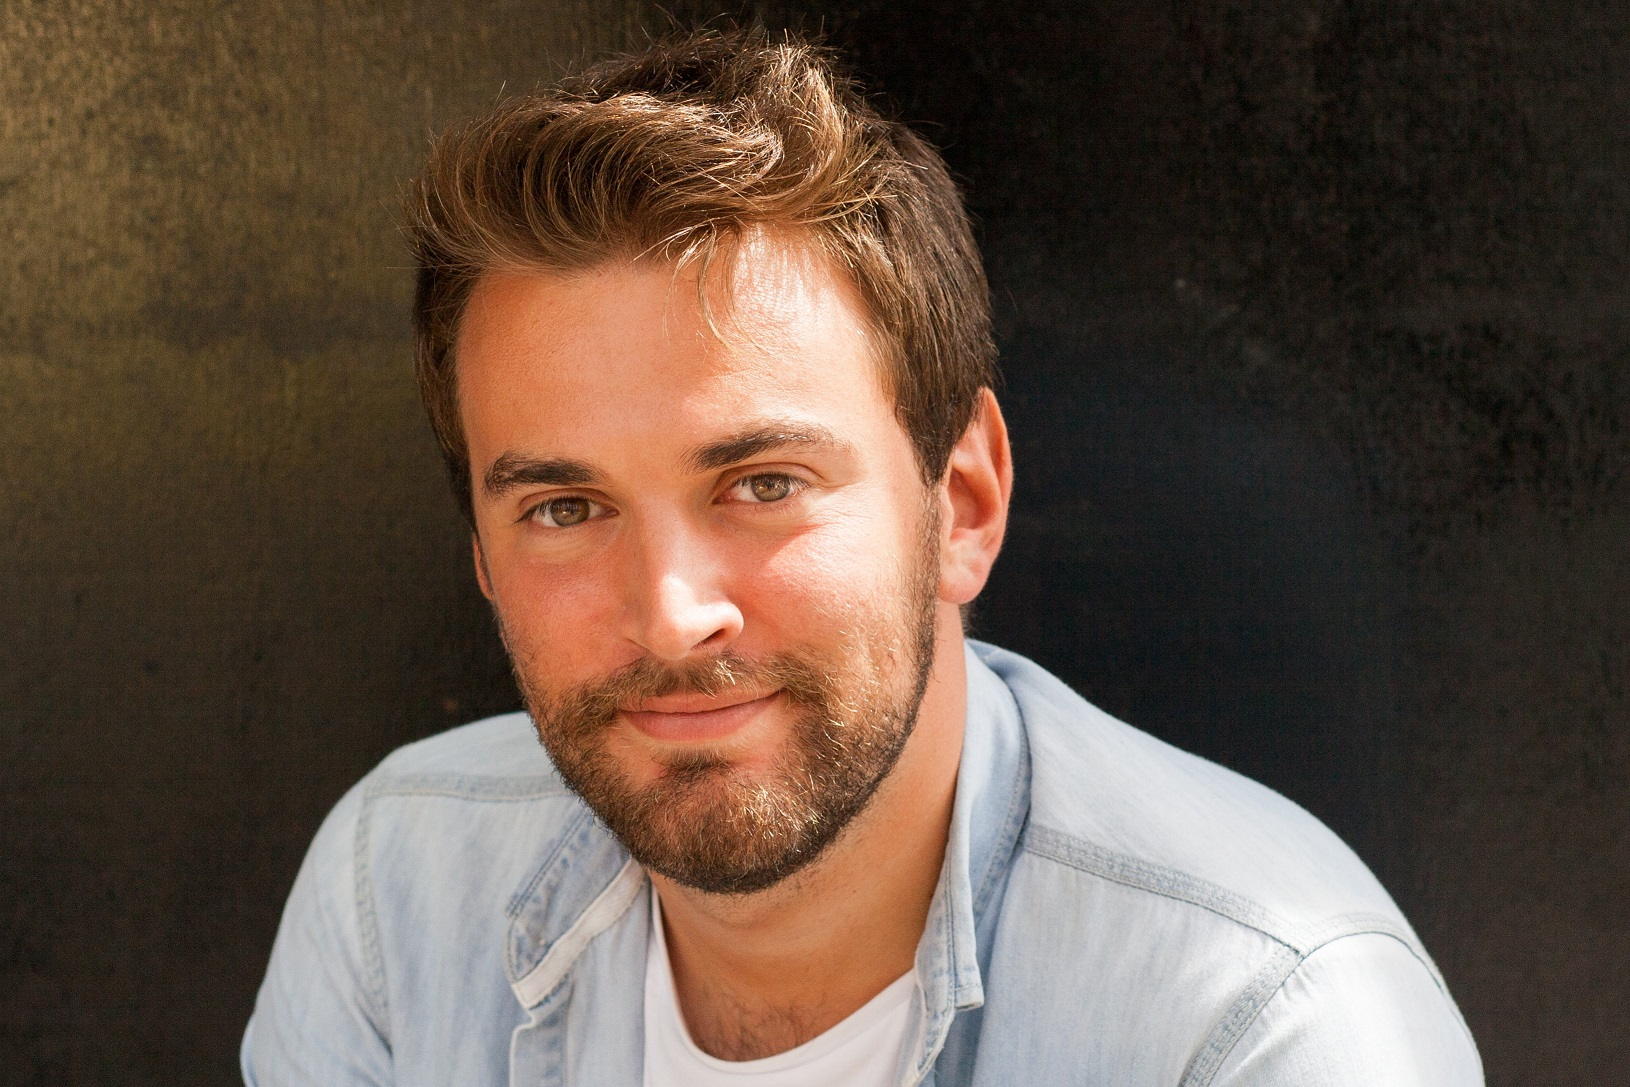 Jonny Benjamin talks about his new book The Stranger On The Bridge on mental health podcast Mentally Yours